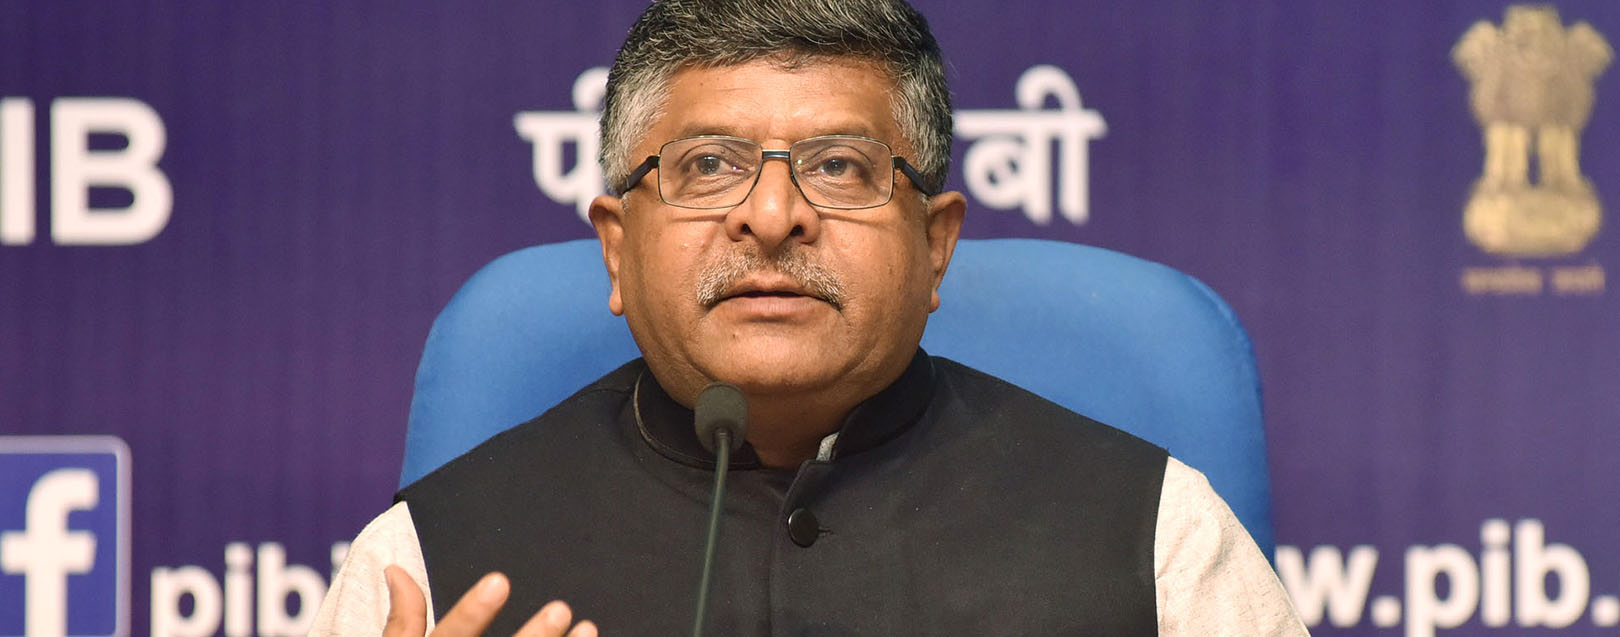 Electronics clusters to be set up in 400 cities: Prasad